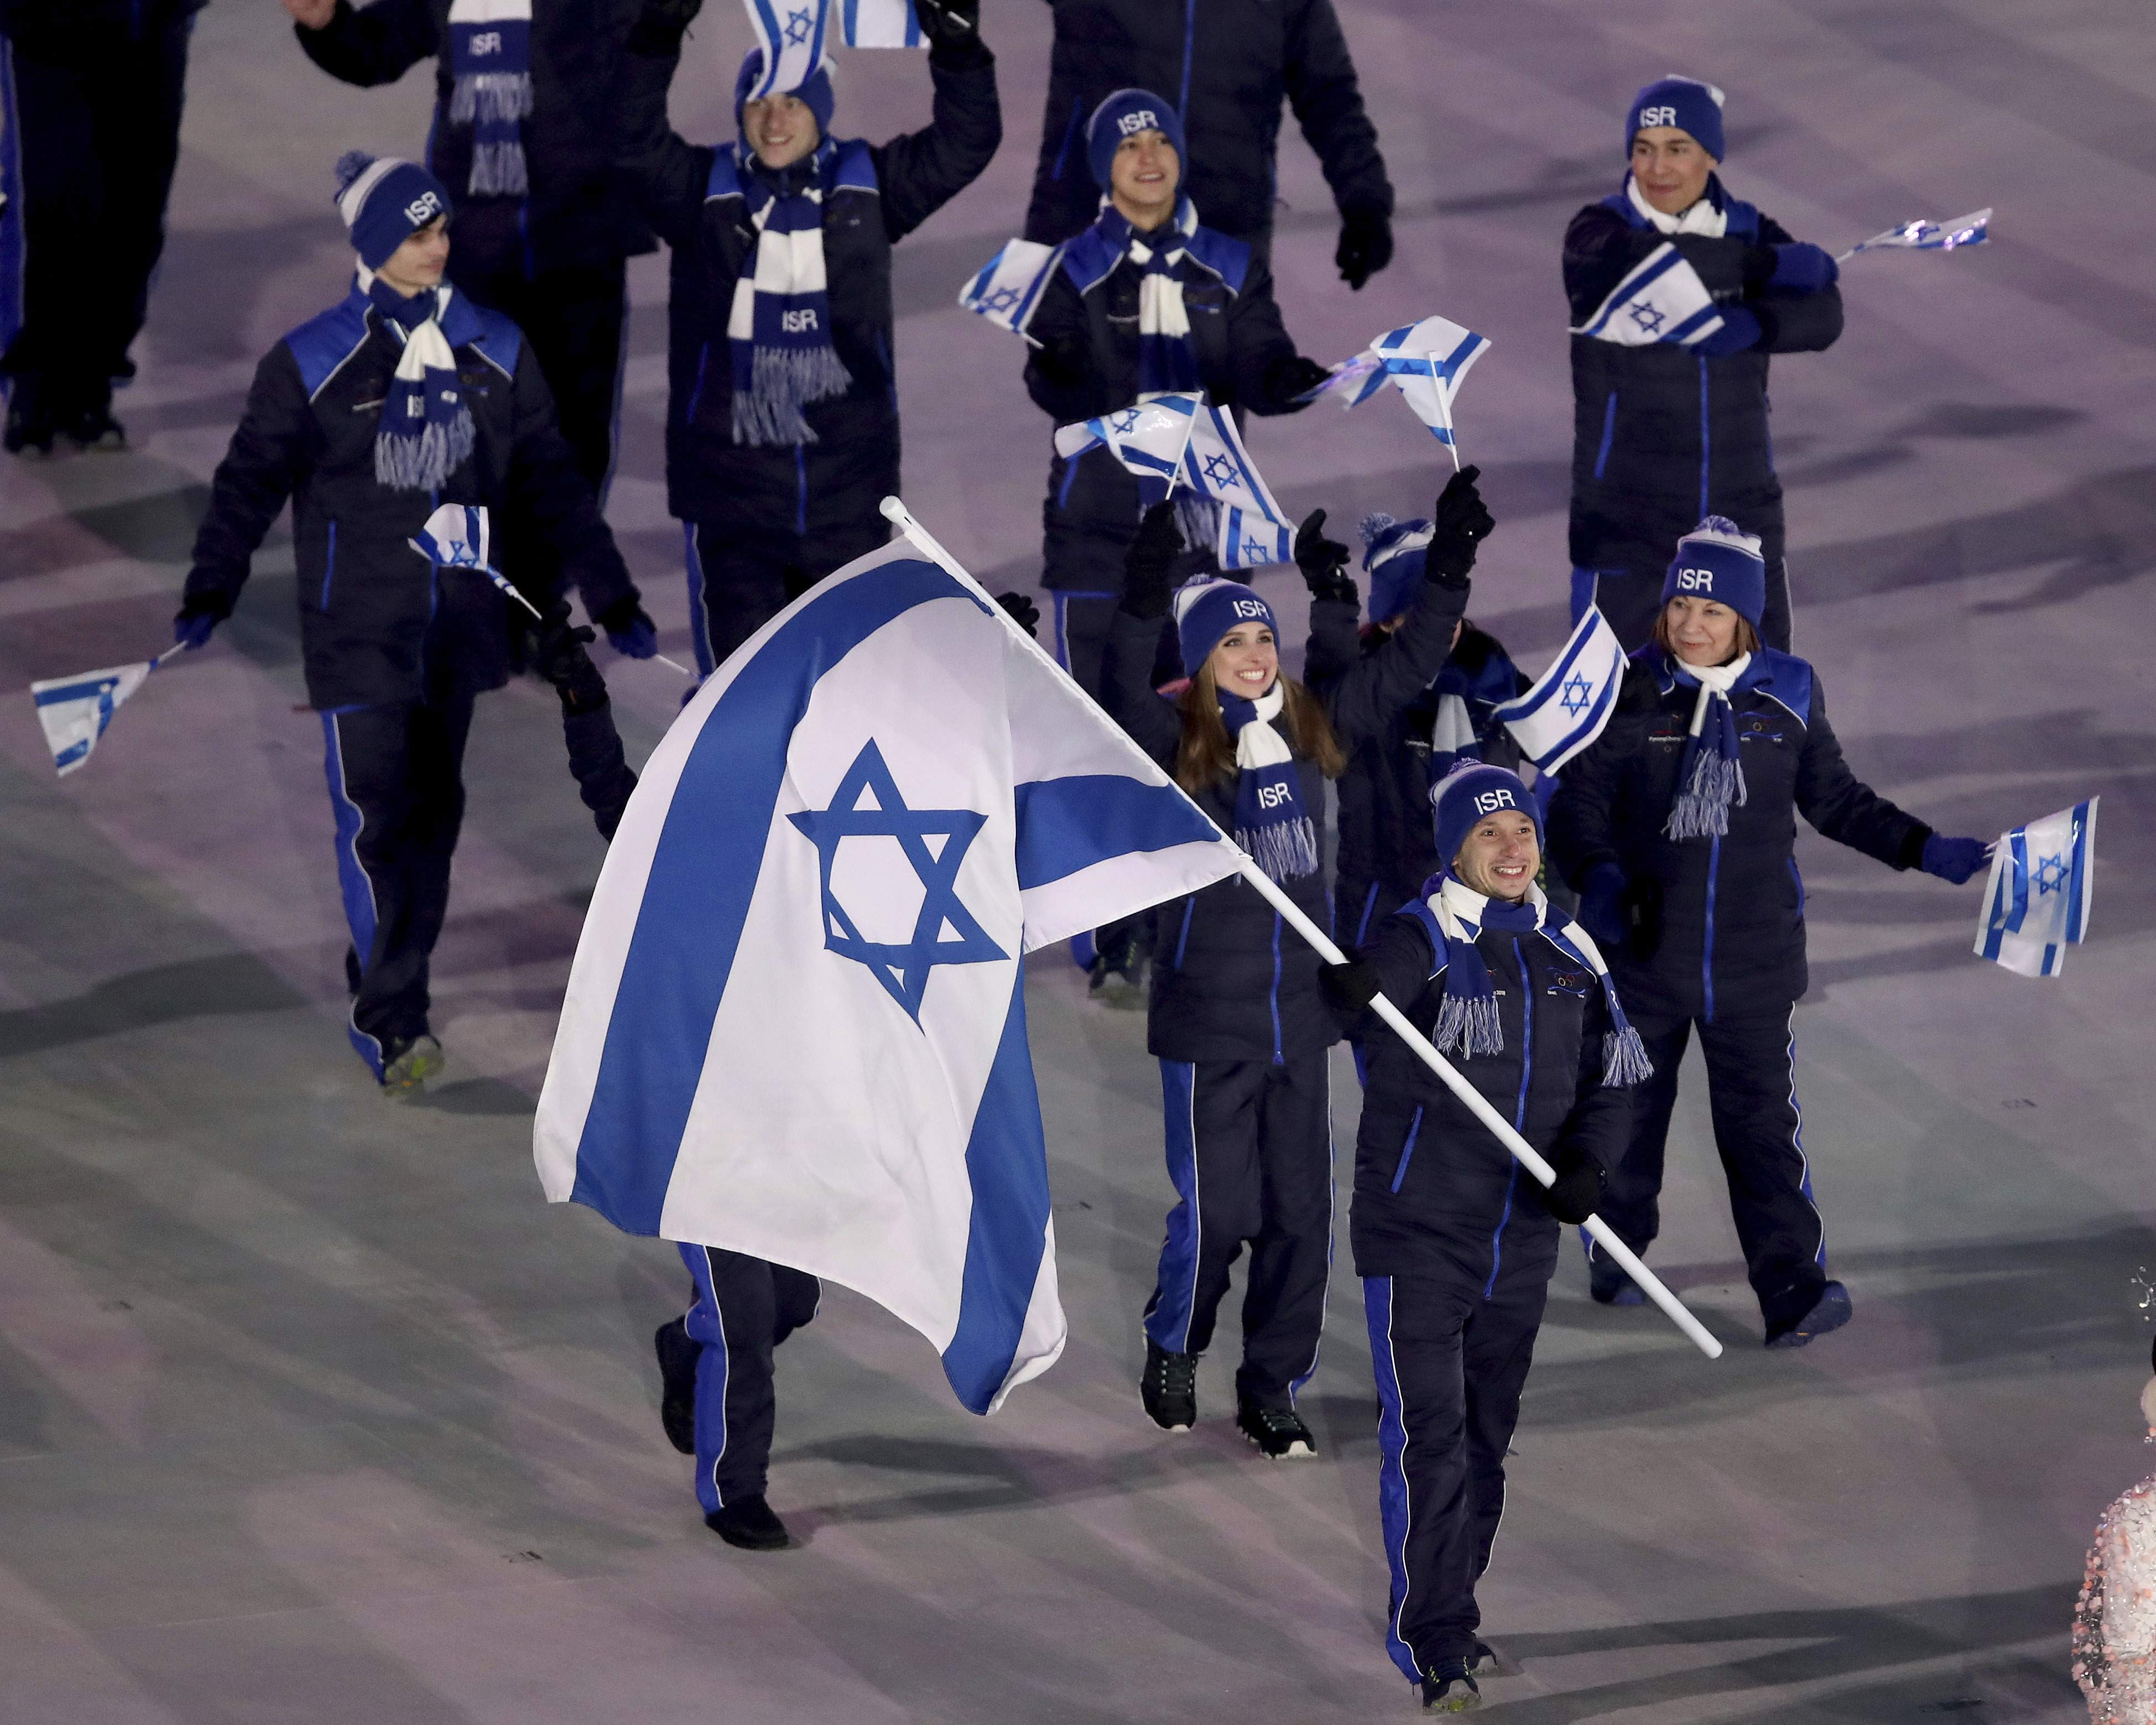 Alexei Bychenko carries the flag of Israel during the opening ceremony of the 2018 Winter Olympics in Pyeongchang, South Korea, Friday, Feb. 9, 2018. (Sean Haffey/Pool Photo via AP)